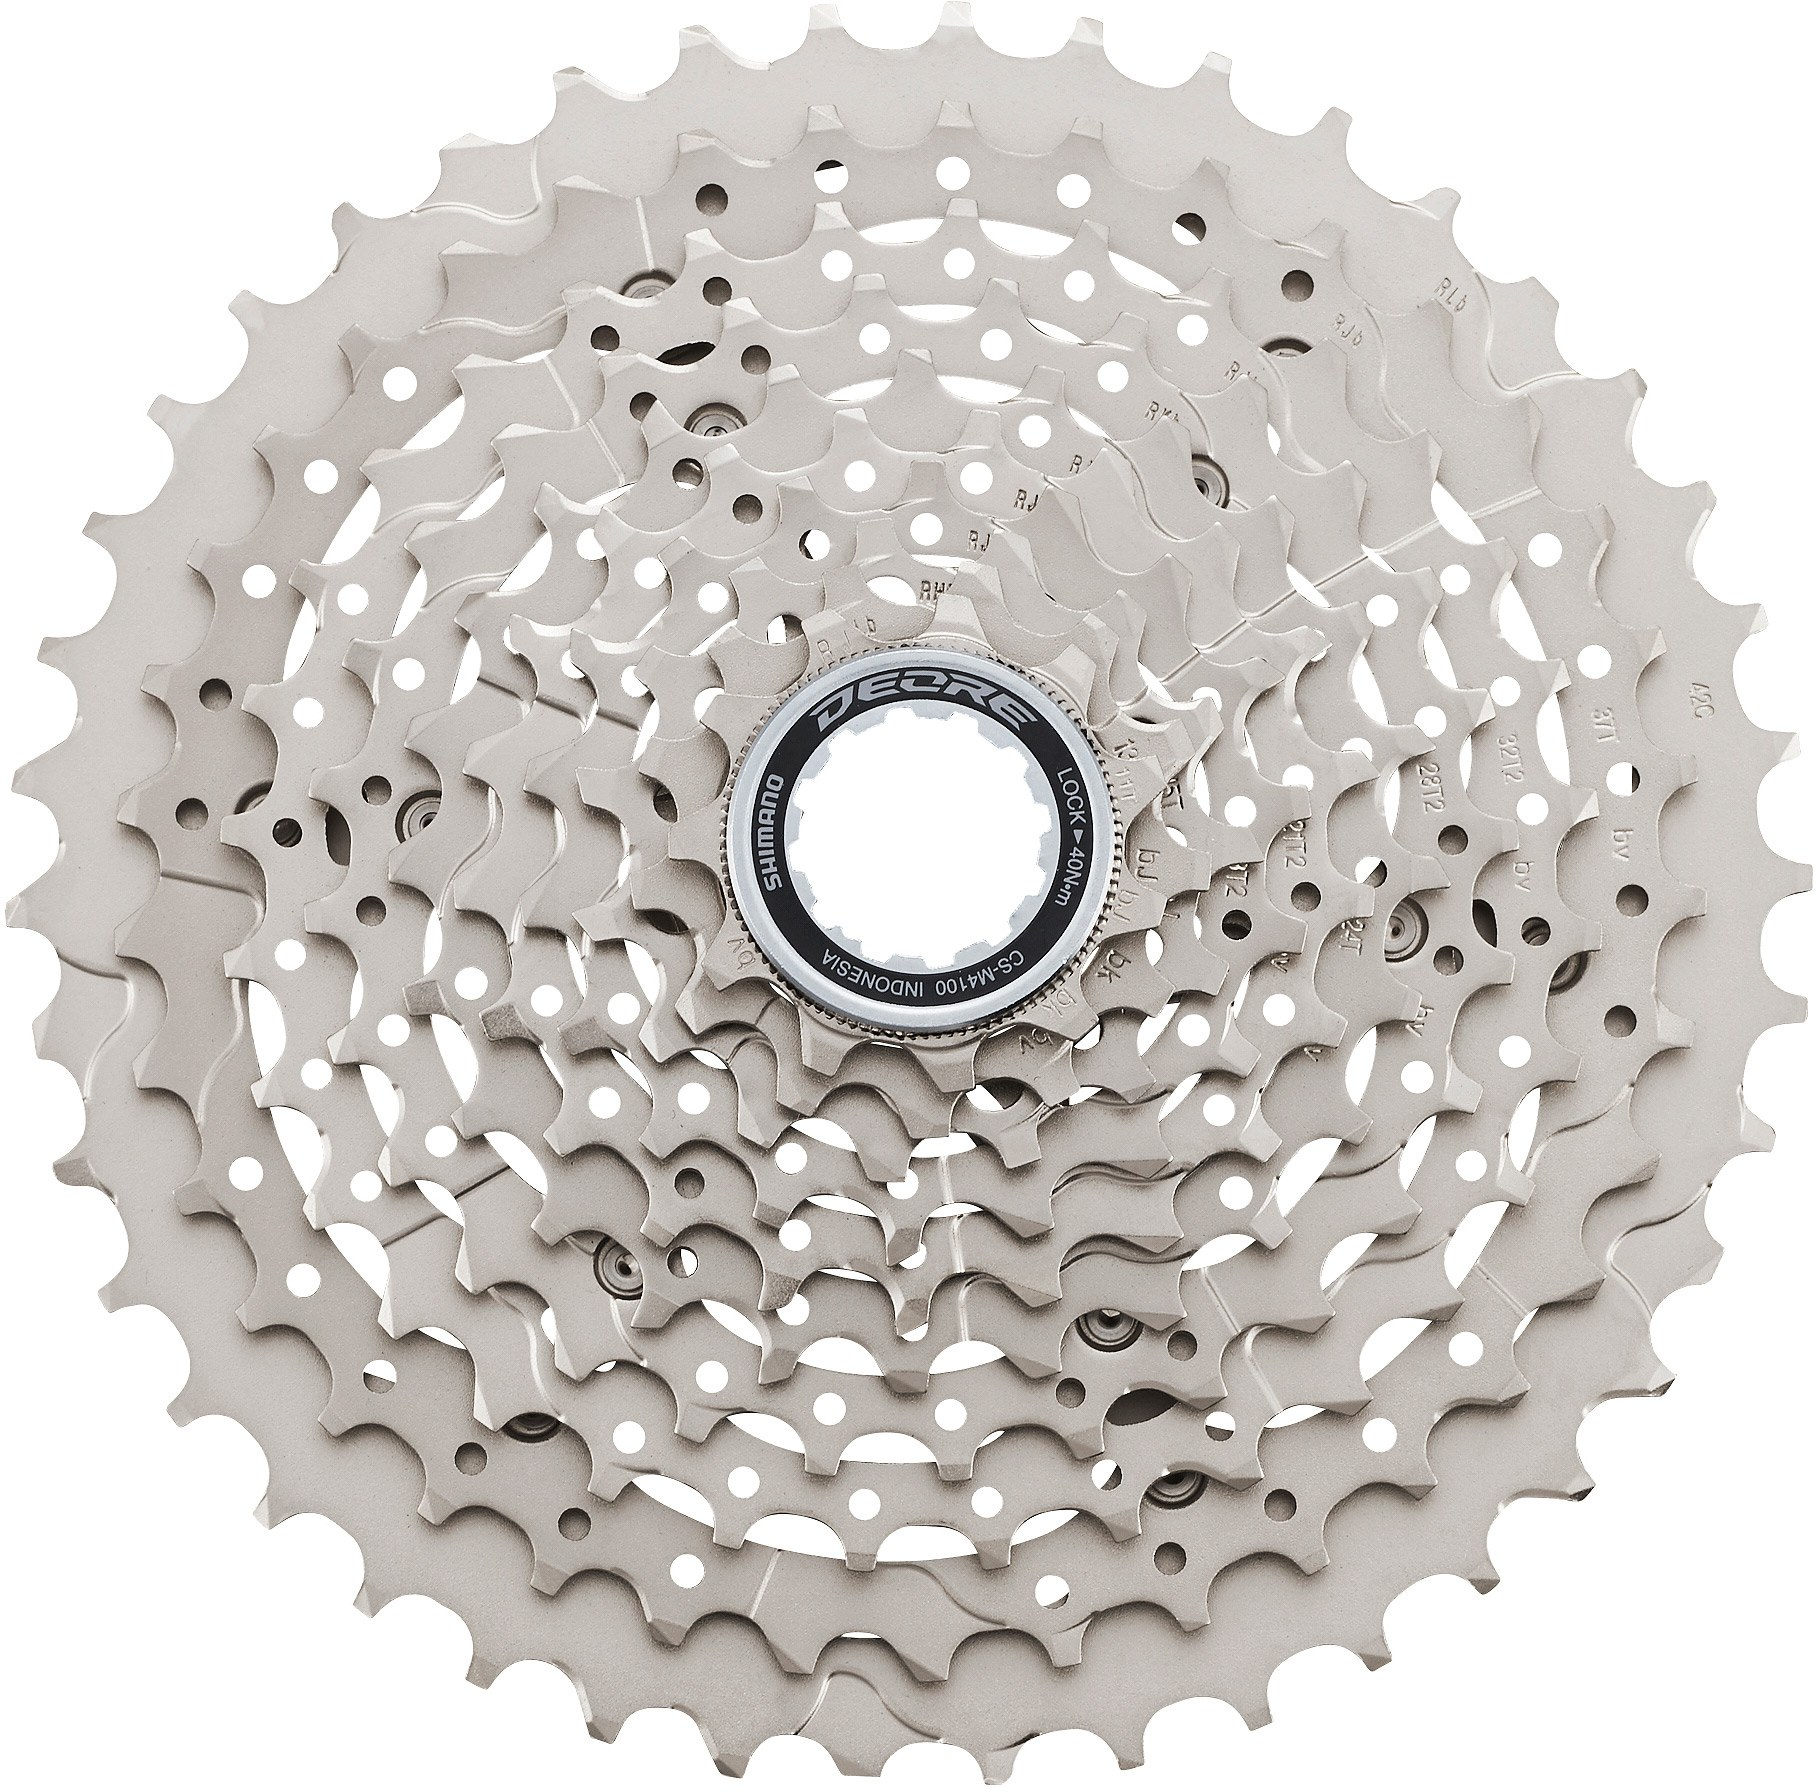 CS-M4100 Deore 10-speed cassette, 11-42T